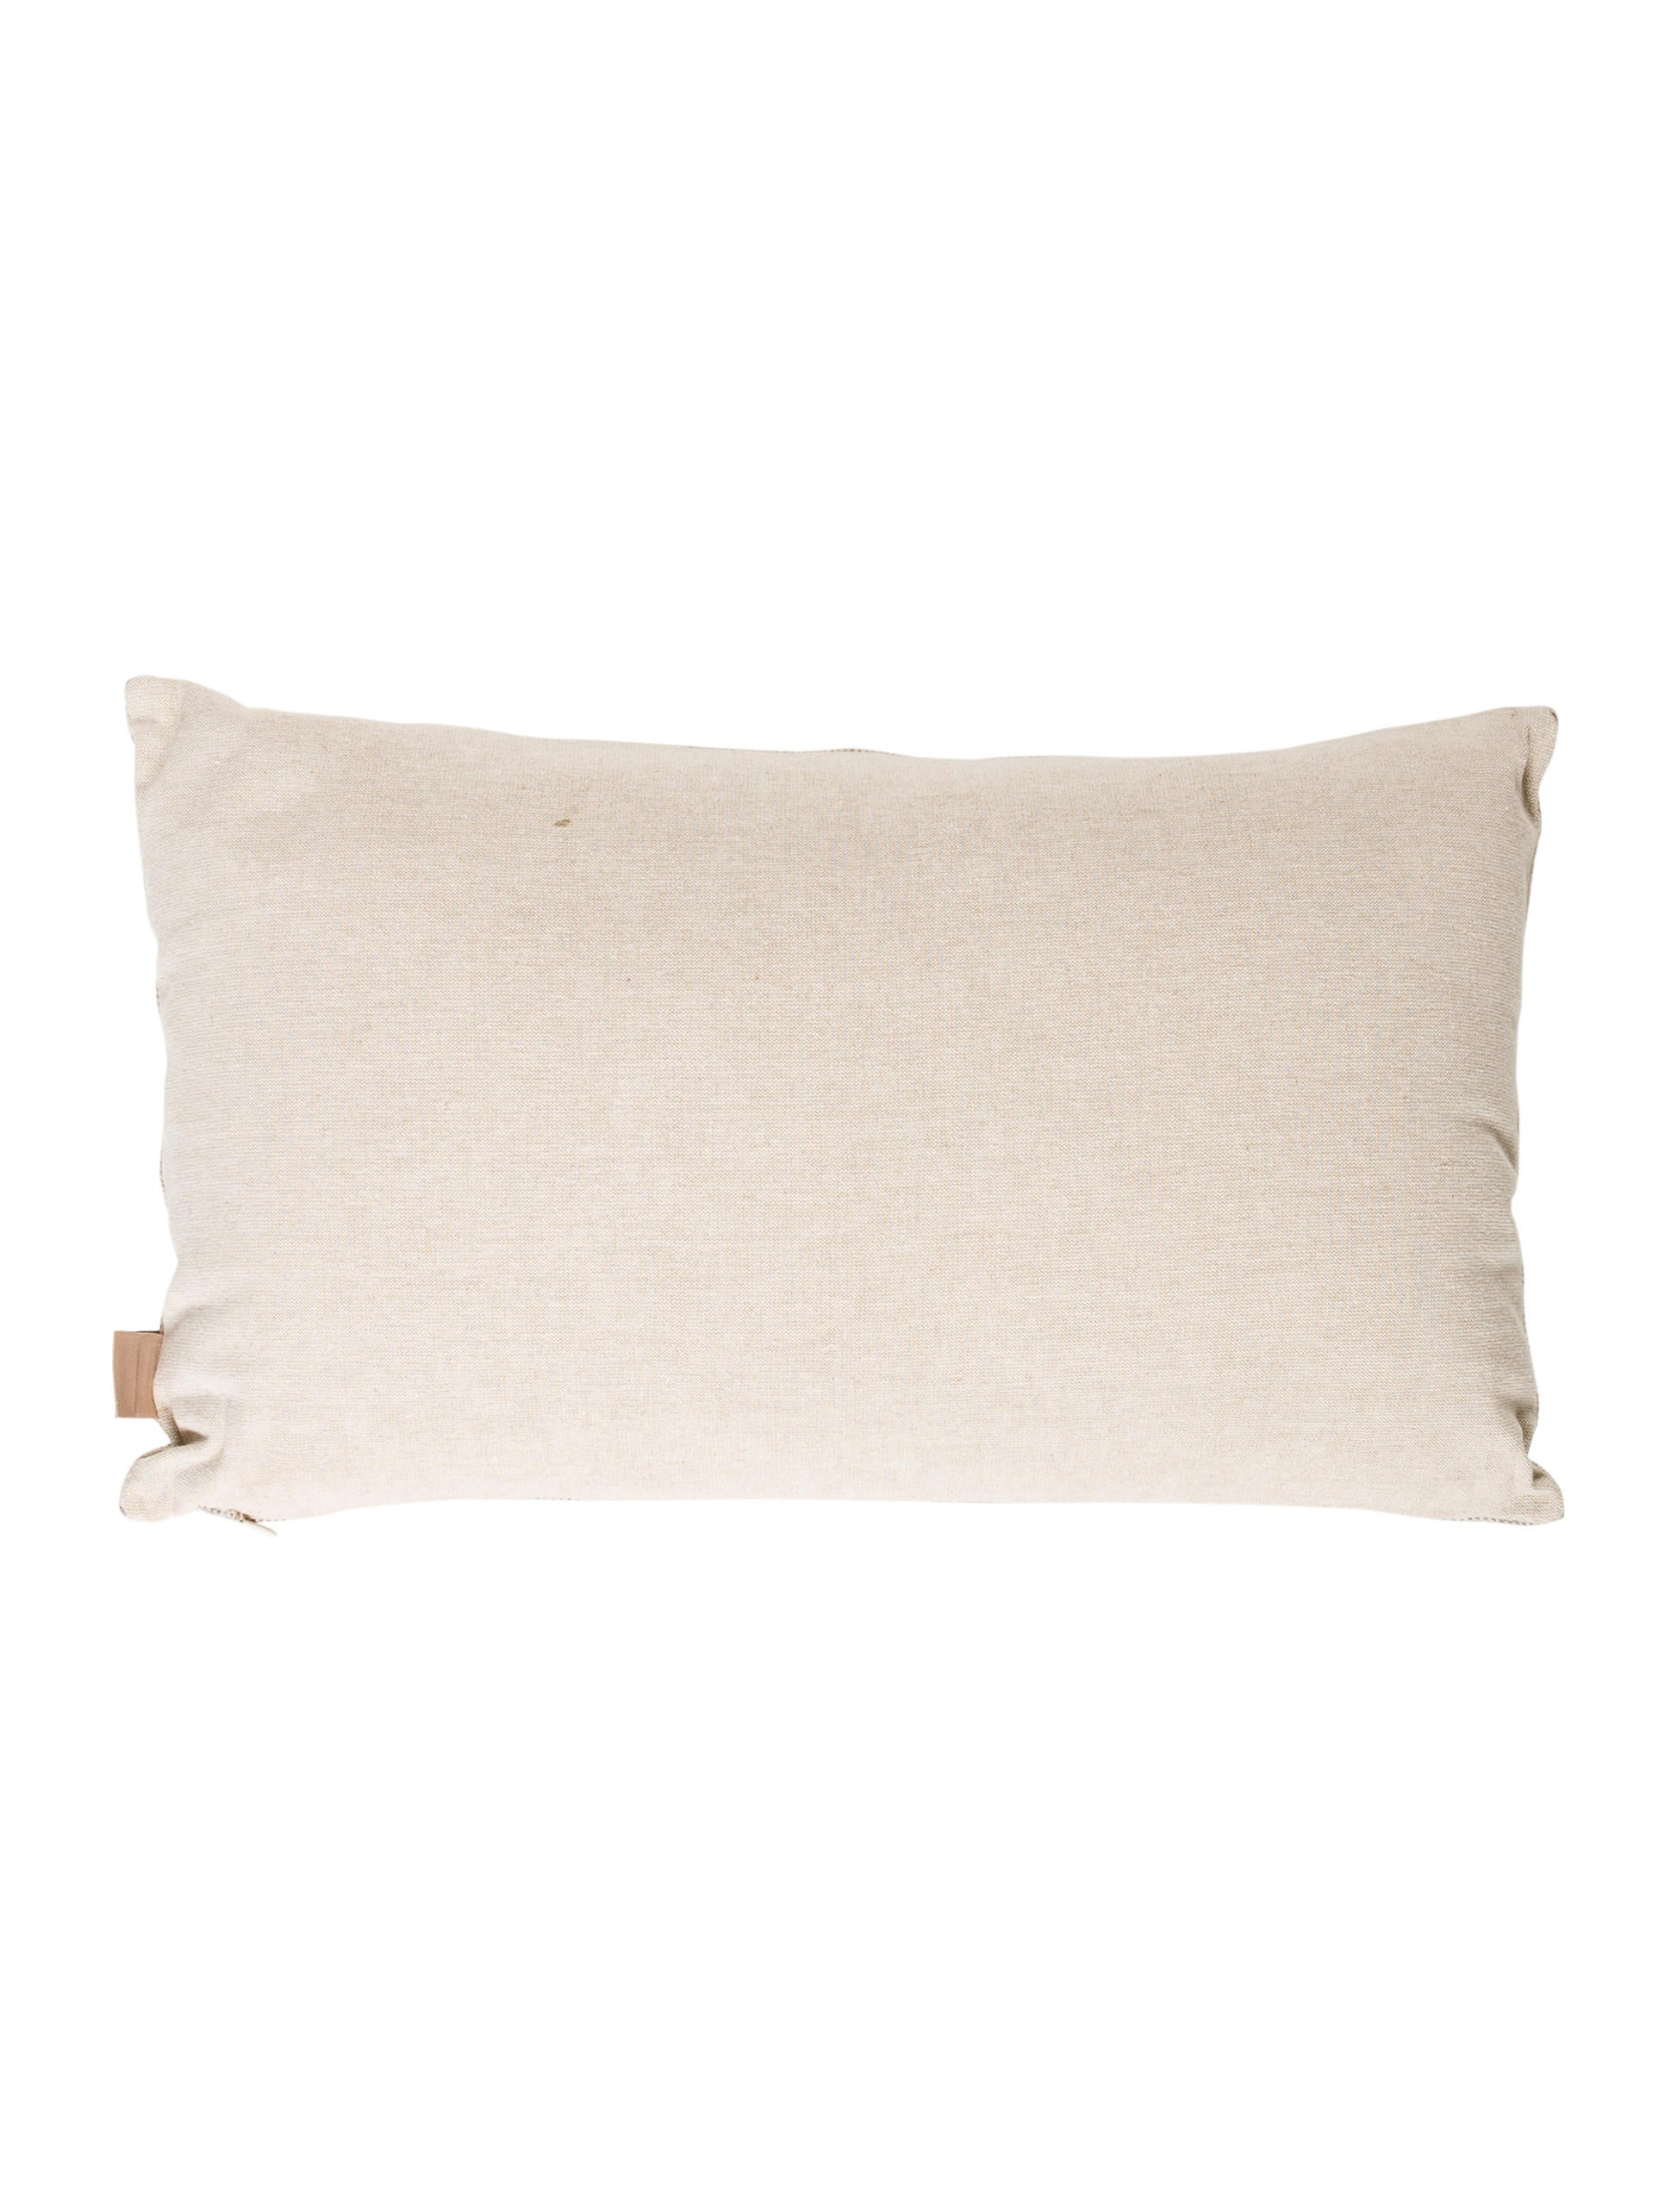 Decorative Pillows With Embellishments : Embellished Throw Pillow - Pillows And Throws - PILLO20158 The RealReal